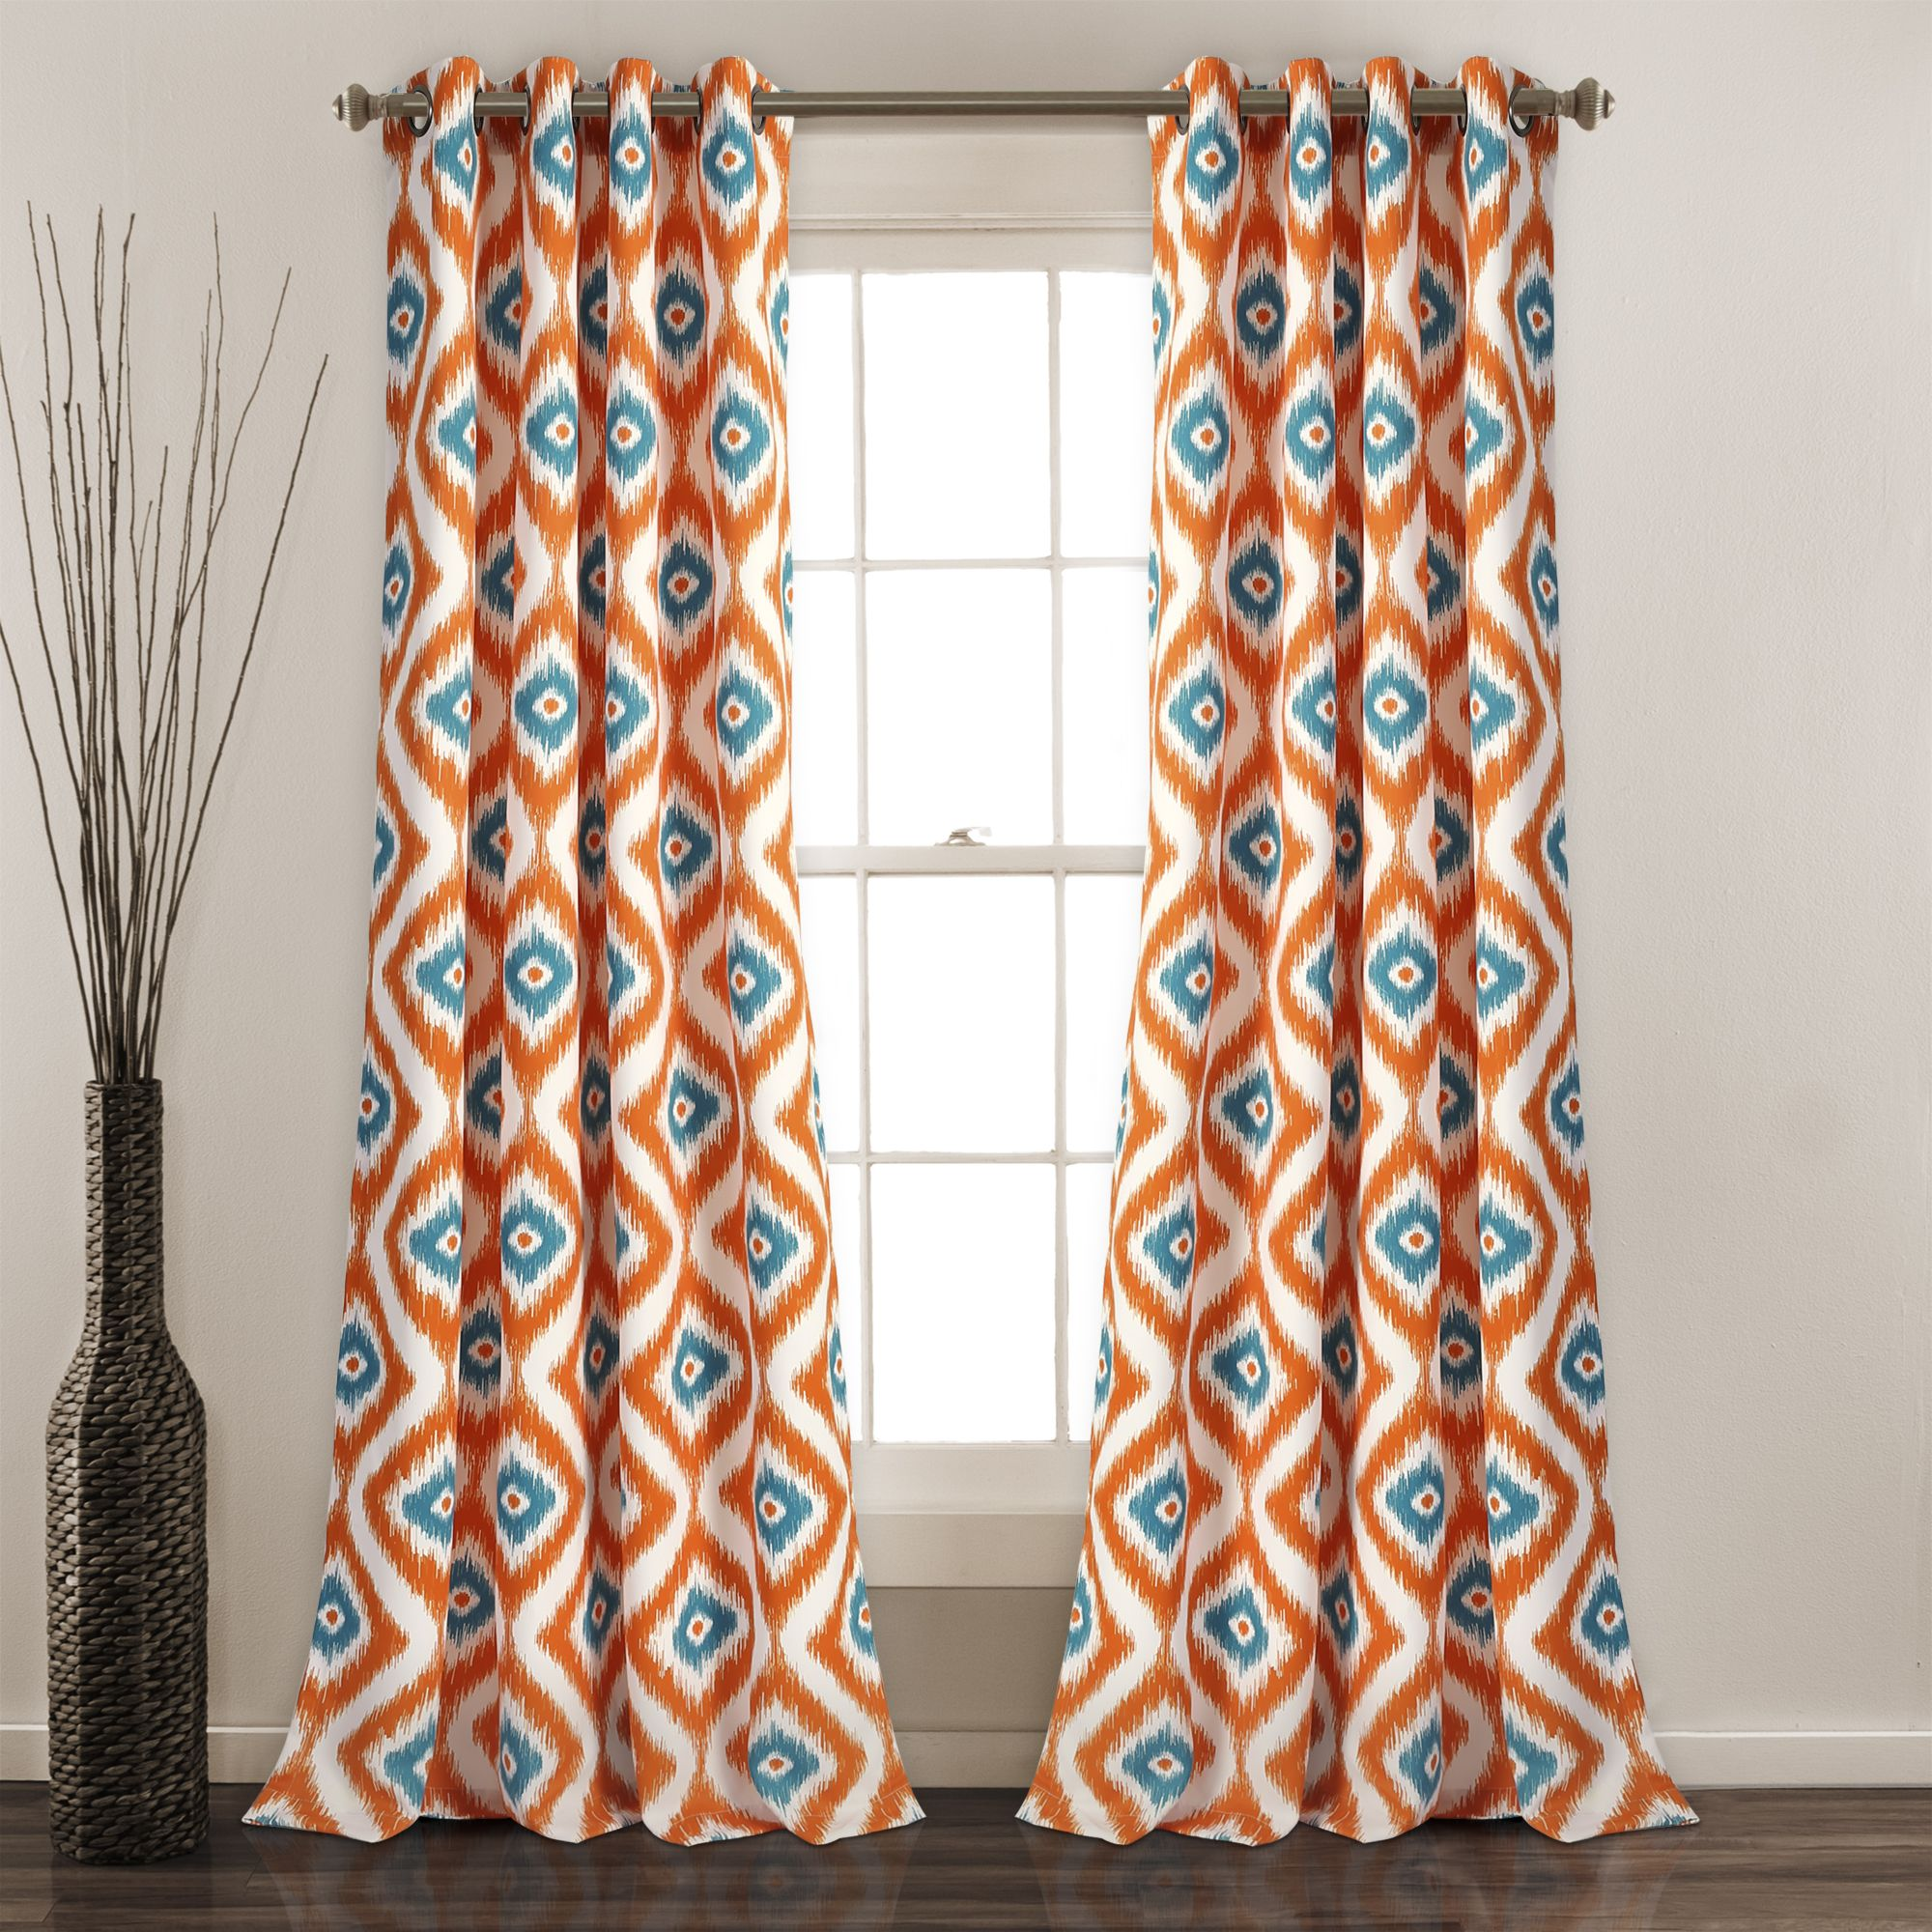 How To Rock The Geometric Decor Trend Without Pattern Overload Orange Curtains Blue Curtains Colorful Curtains